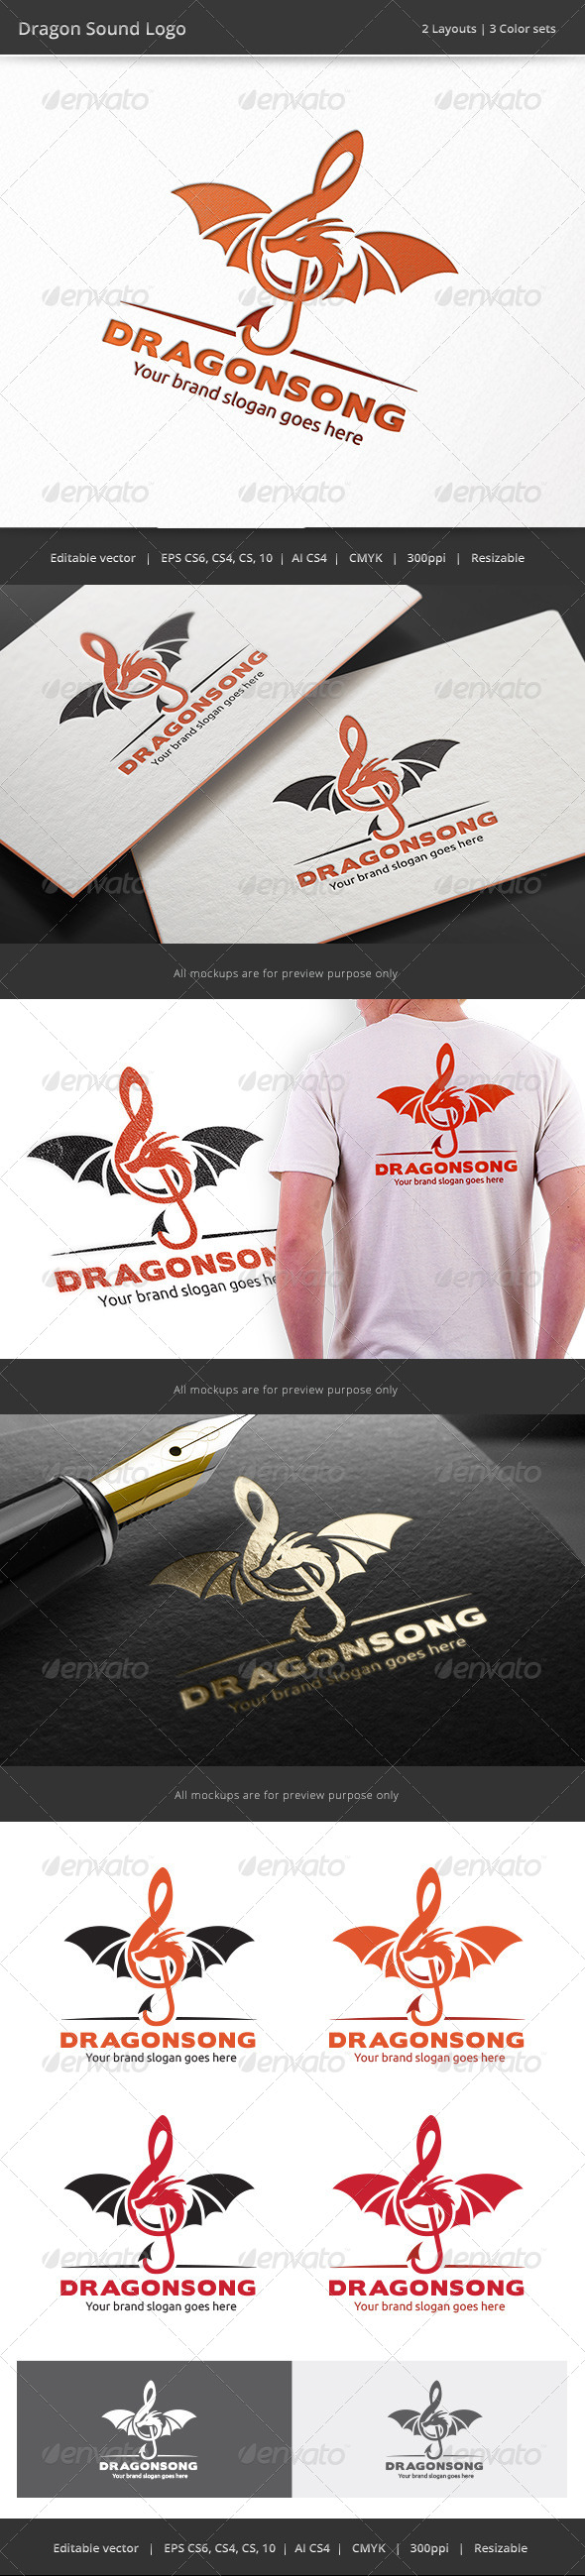 GraphicRiver Dragon Sound Logo 8274431